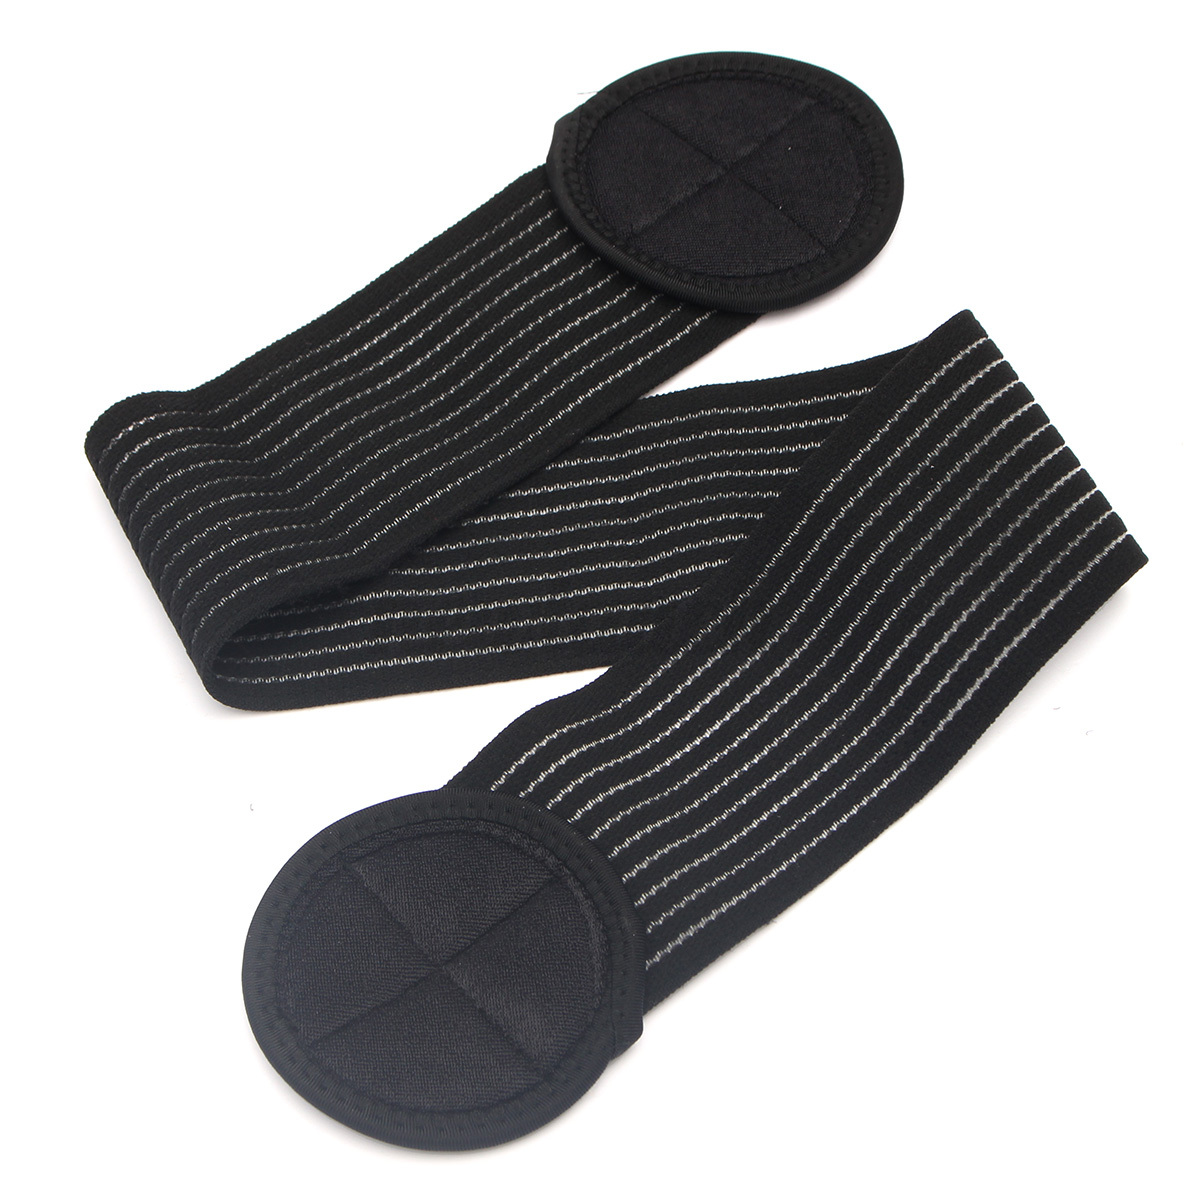 Neoprene Shoulder Dislocation Injury Arthritis Support Strap Brace Pain Relief